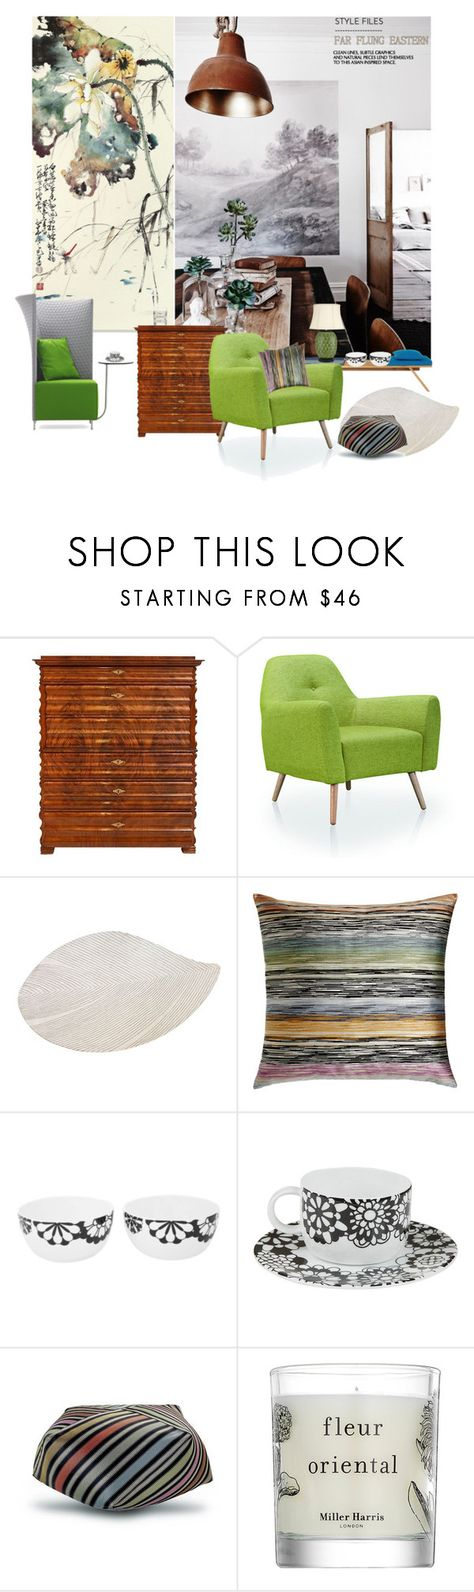 """""""Eastern Design (T.S)"""" by sue-mes ❤ liked on Polyvore featuring interior, interiors, interior design, home, home decor, interior decorating, Dot & Bo, nanimarquina, Missoni Home and Miller Harris"""